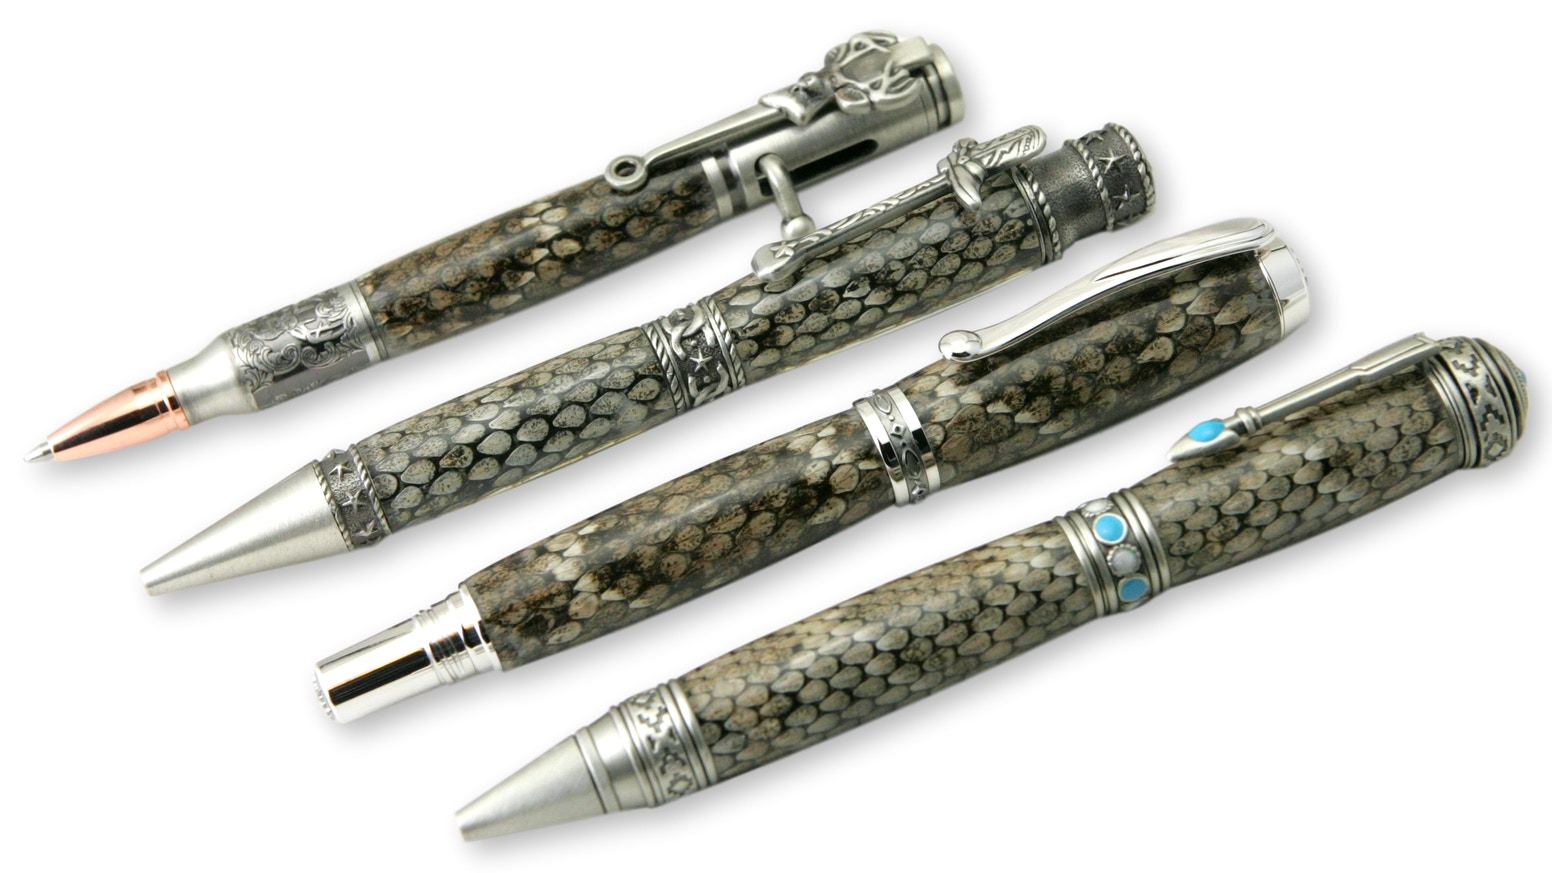 Genuine Diamondback Rattlesnake Skins from the Sonoran Desert handcrafted into amazing writing pens! Fountain, rollerball, & ballpoint!